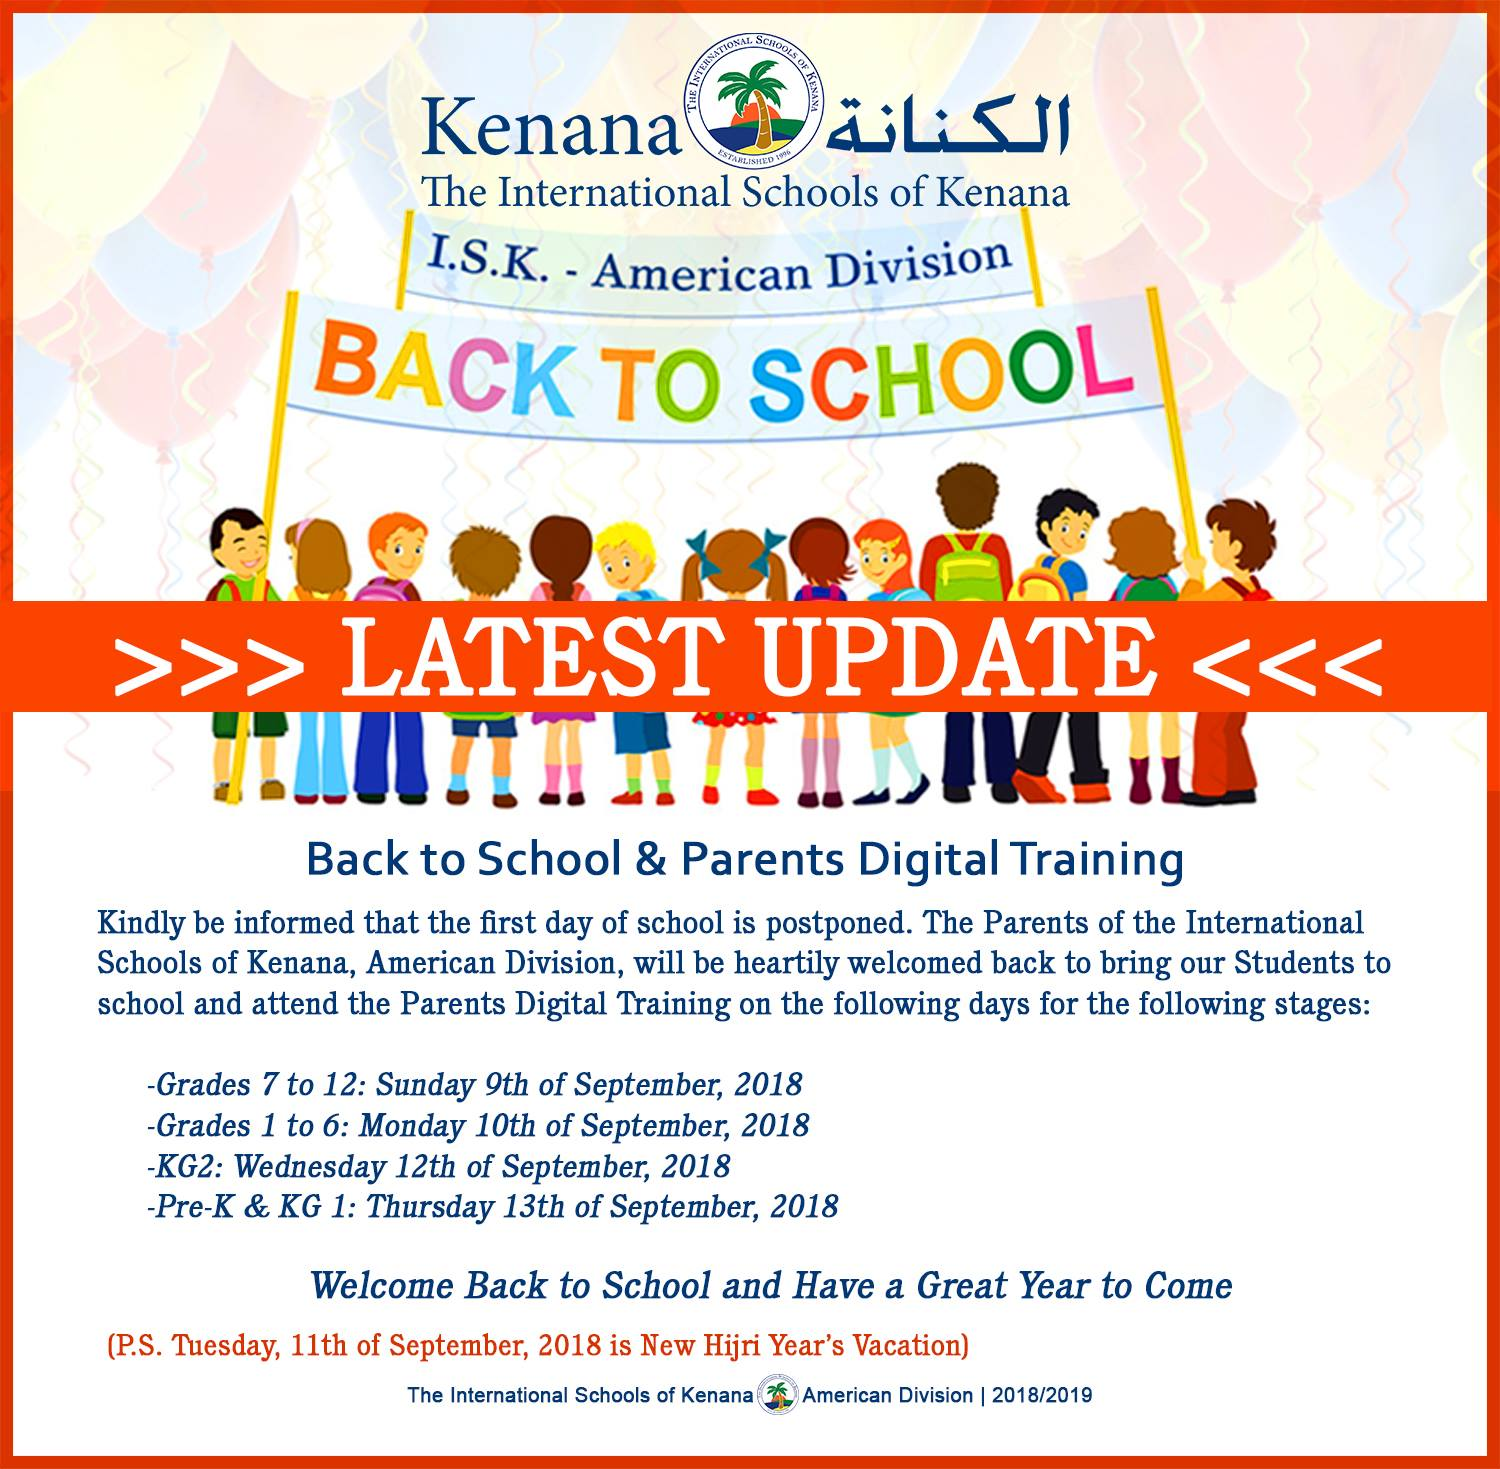 International Schools of Kenana | American Division - Back To School (Latest update)